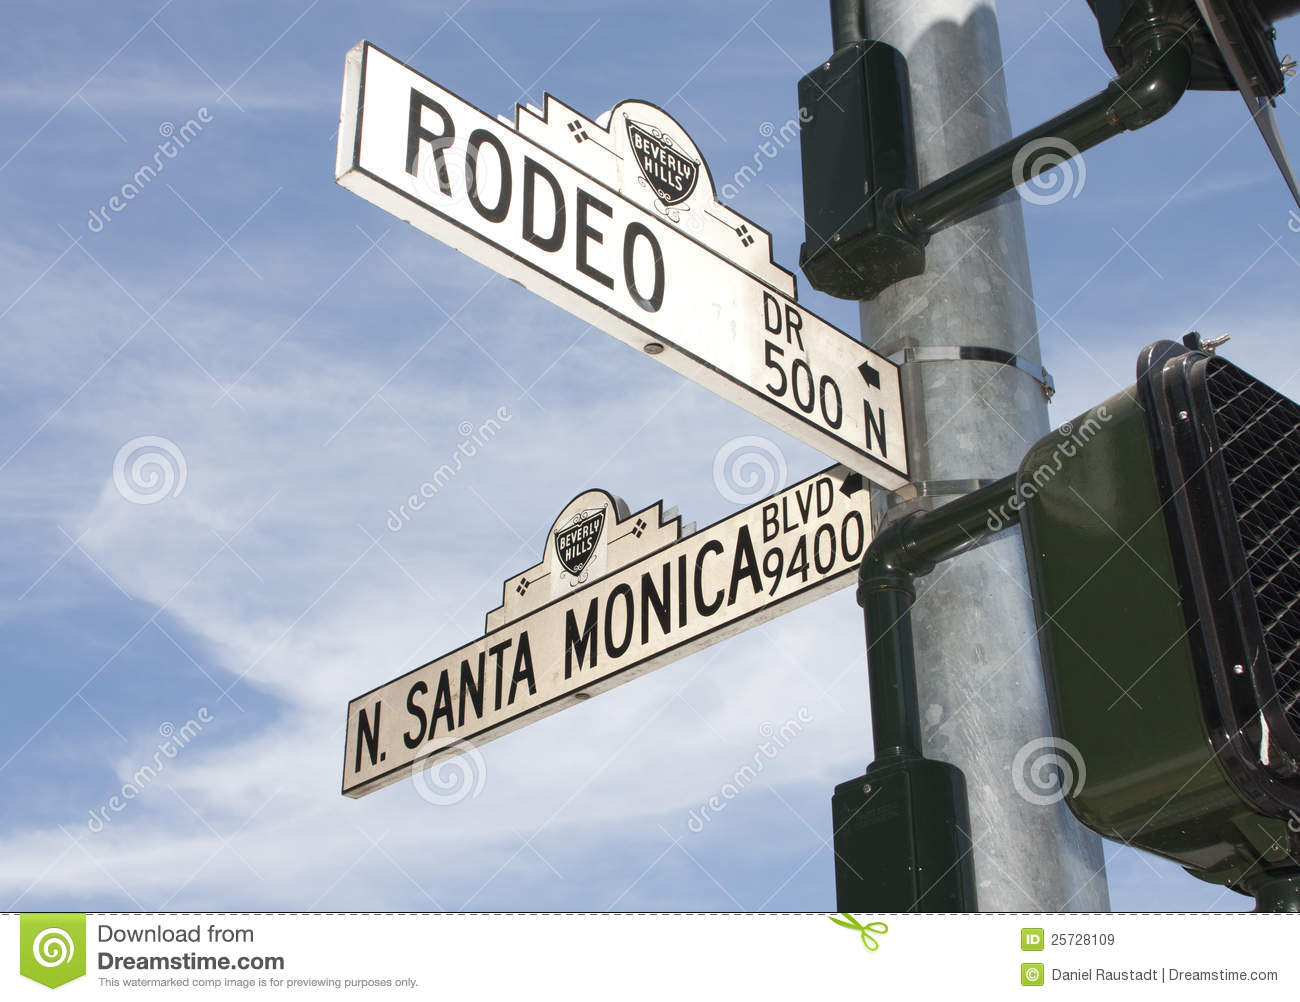 Rodeo Drive Street Sign In Beverly Hills, CA Editorial Stock Image.